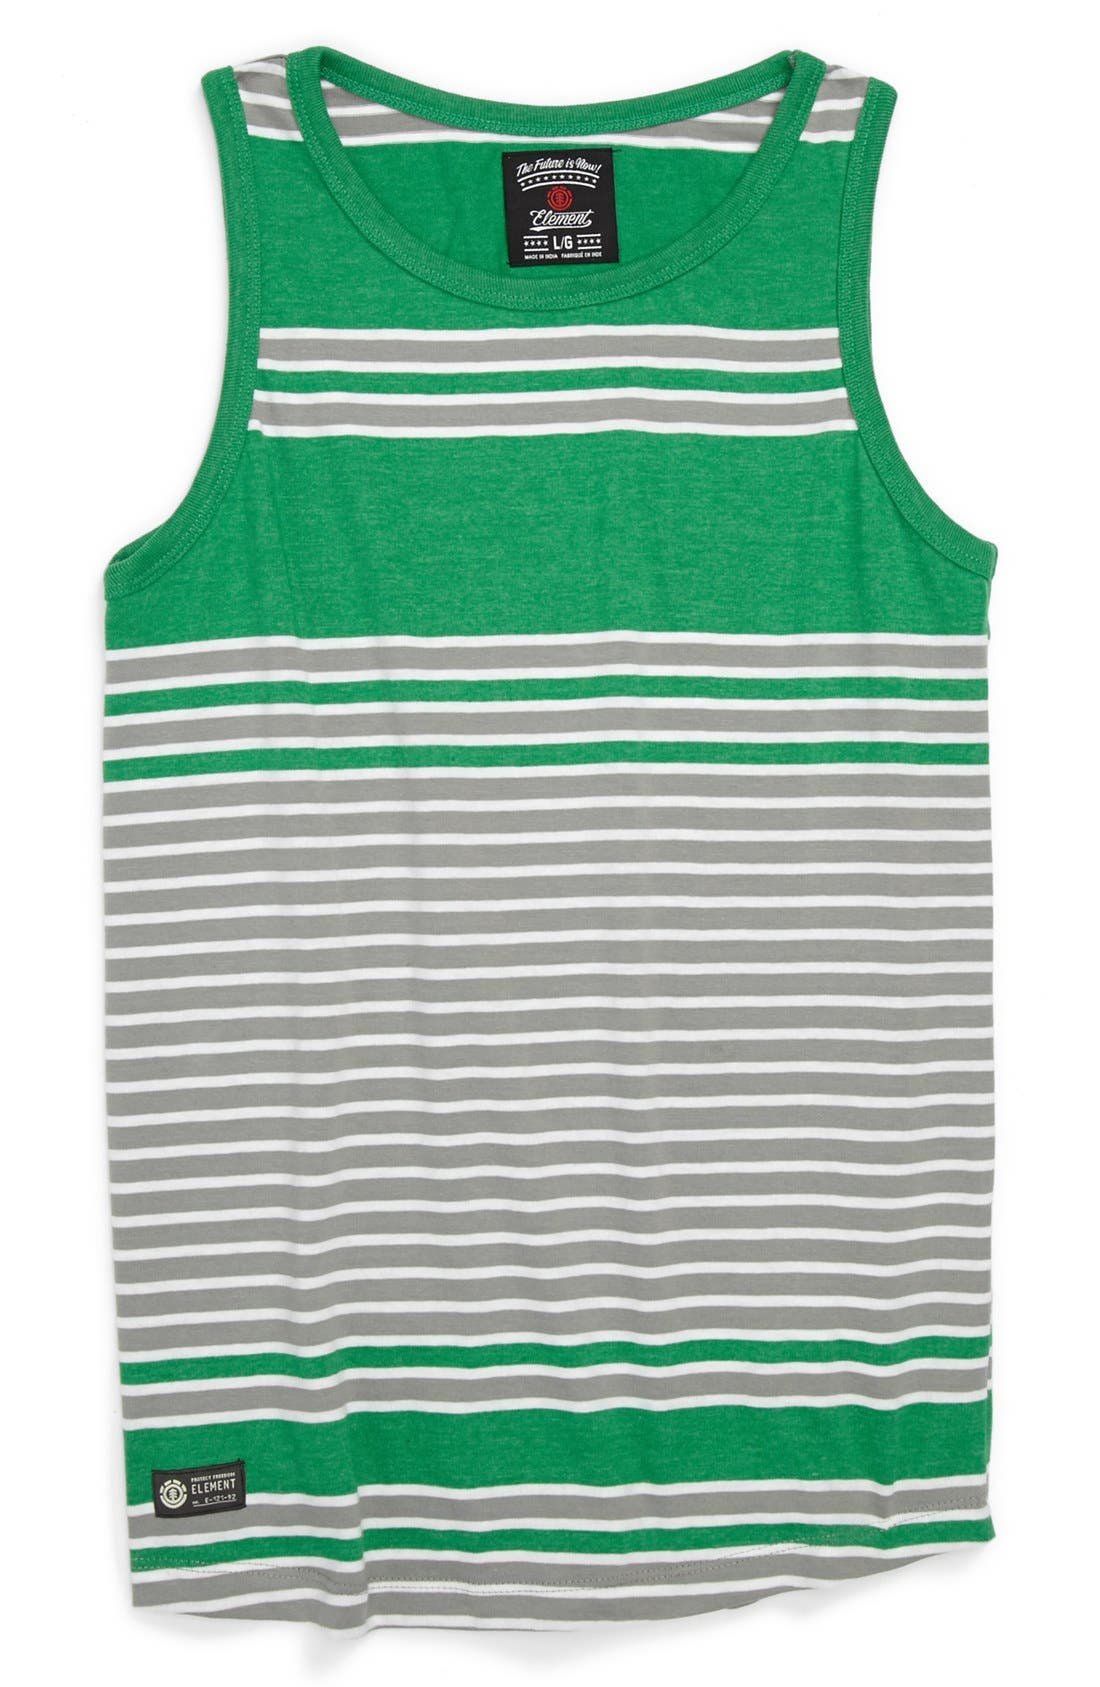 Main Image - Element 'Holmby' Tank Top (Big Boys)